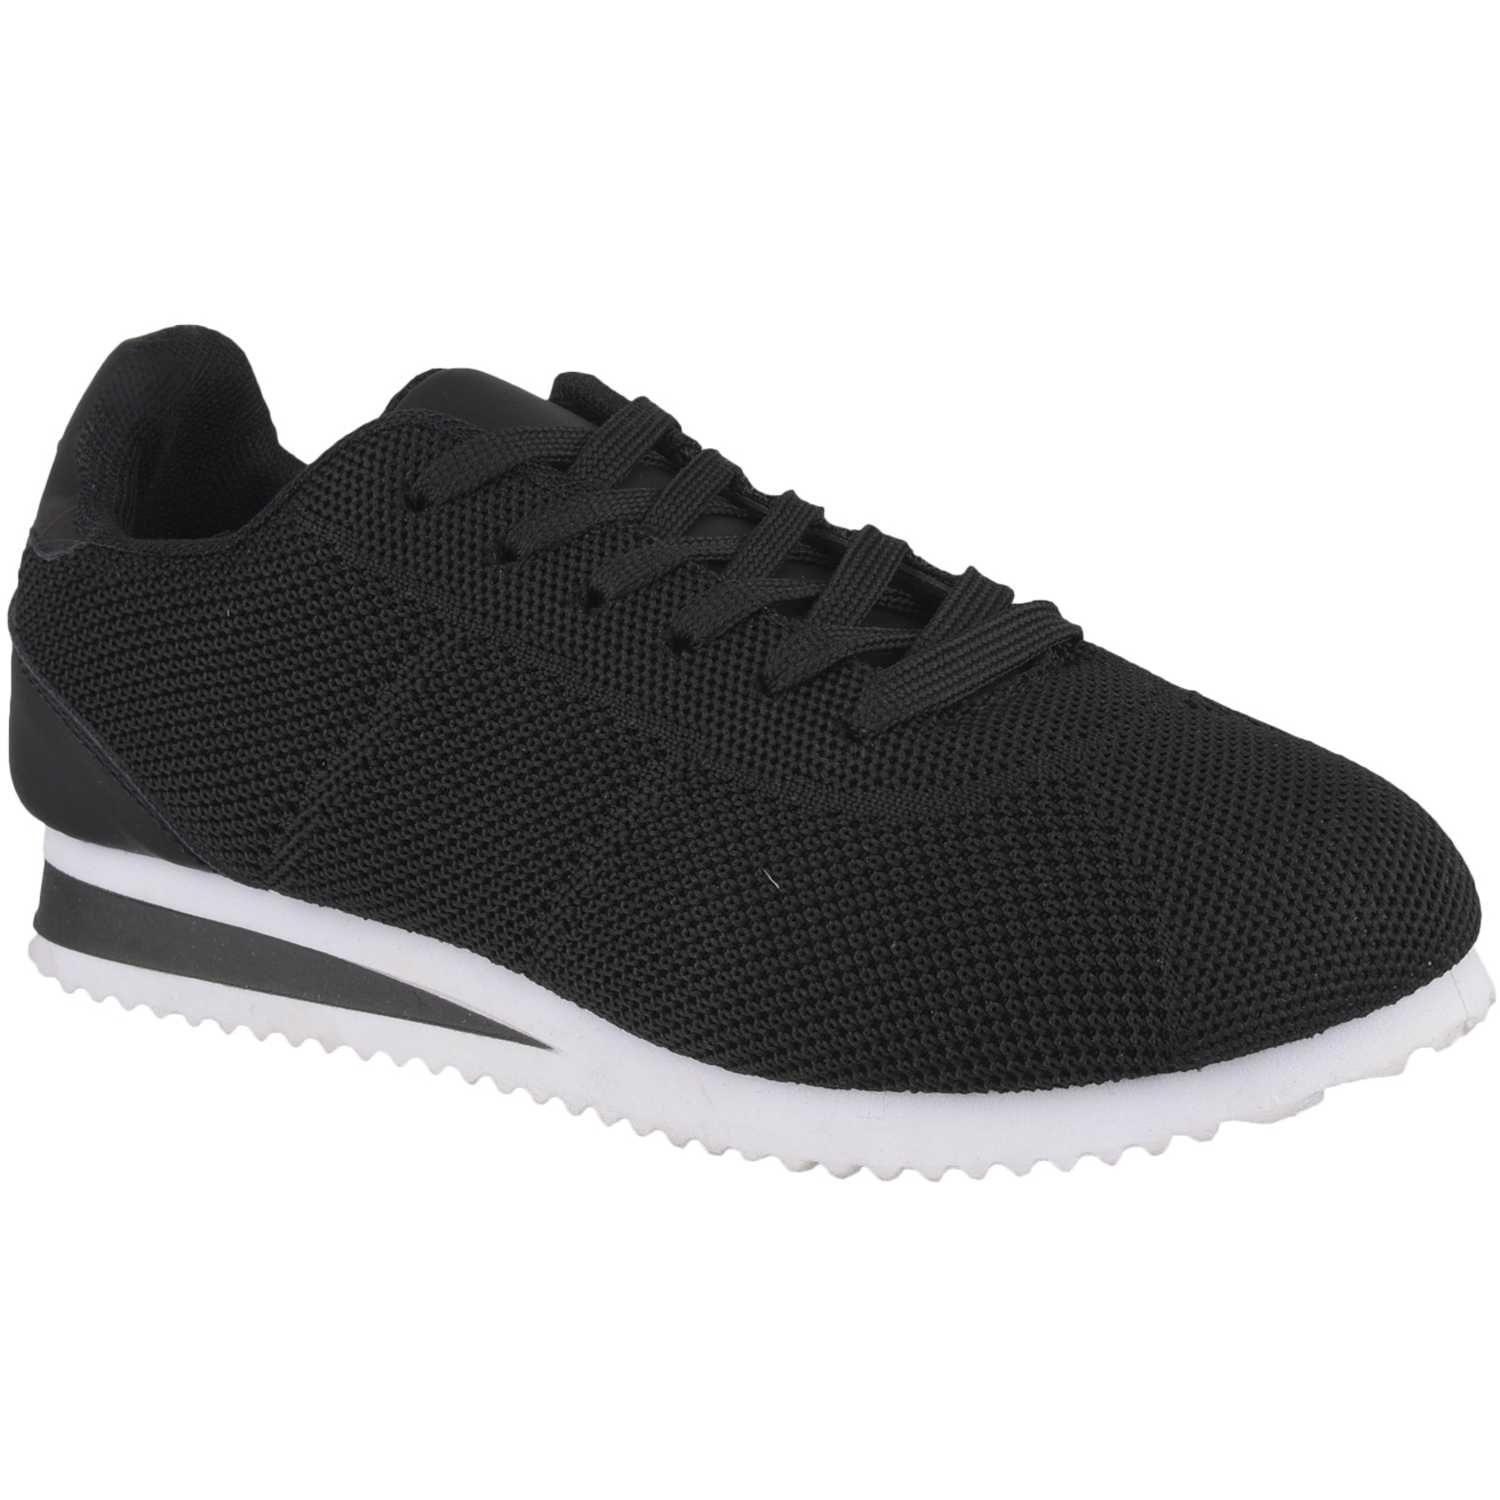 Platanitos zc 8477 Negro Zapatillas Fashion